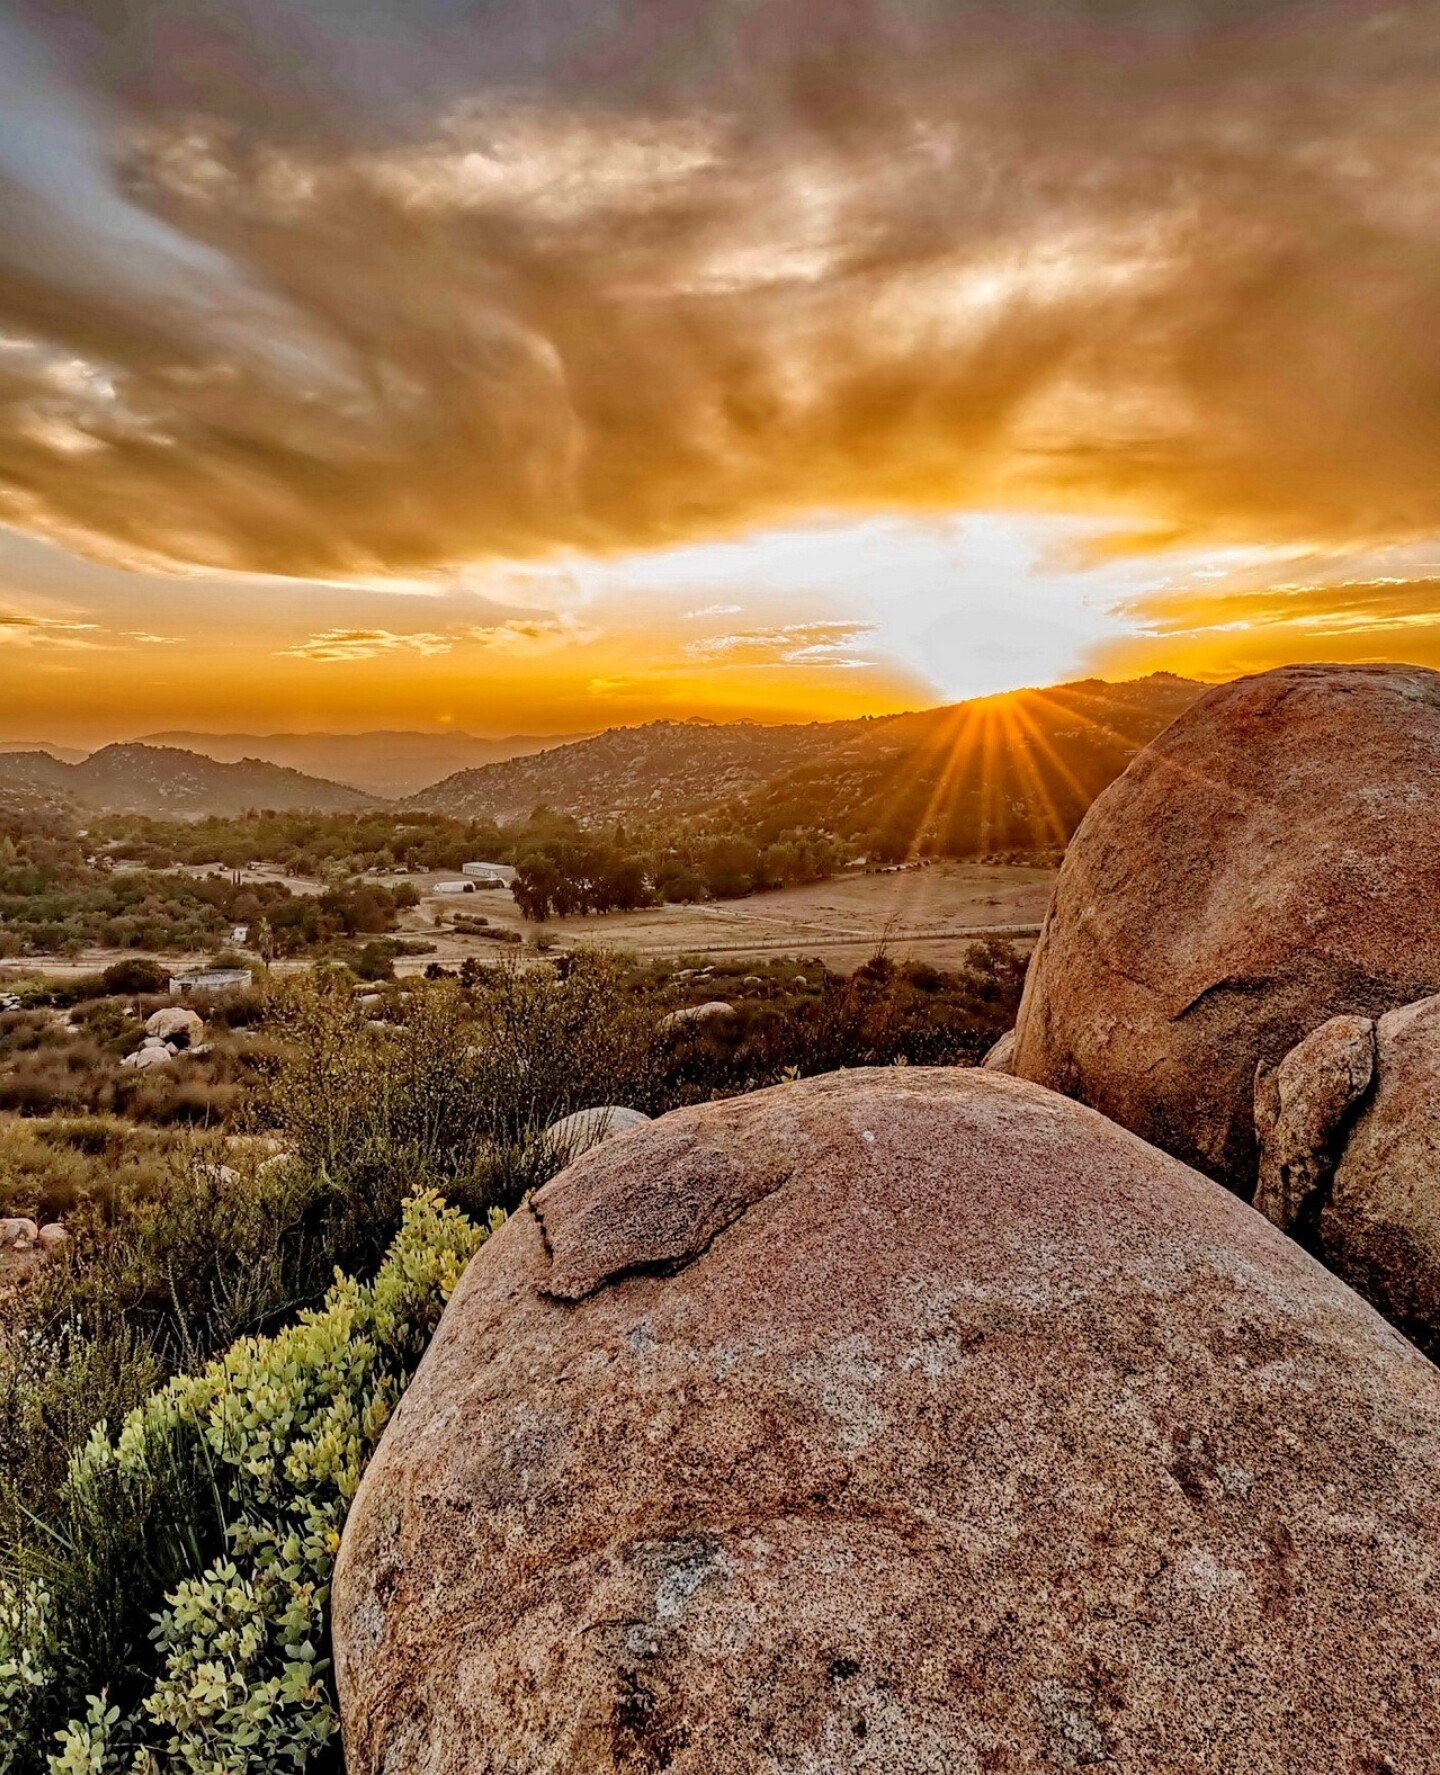 Spiritual Light for These Challenging Times